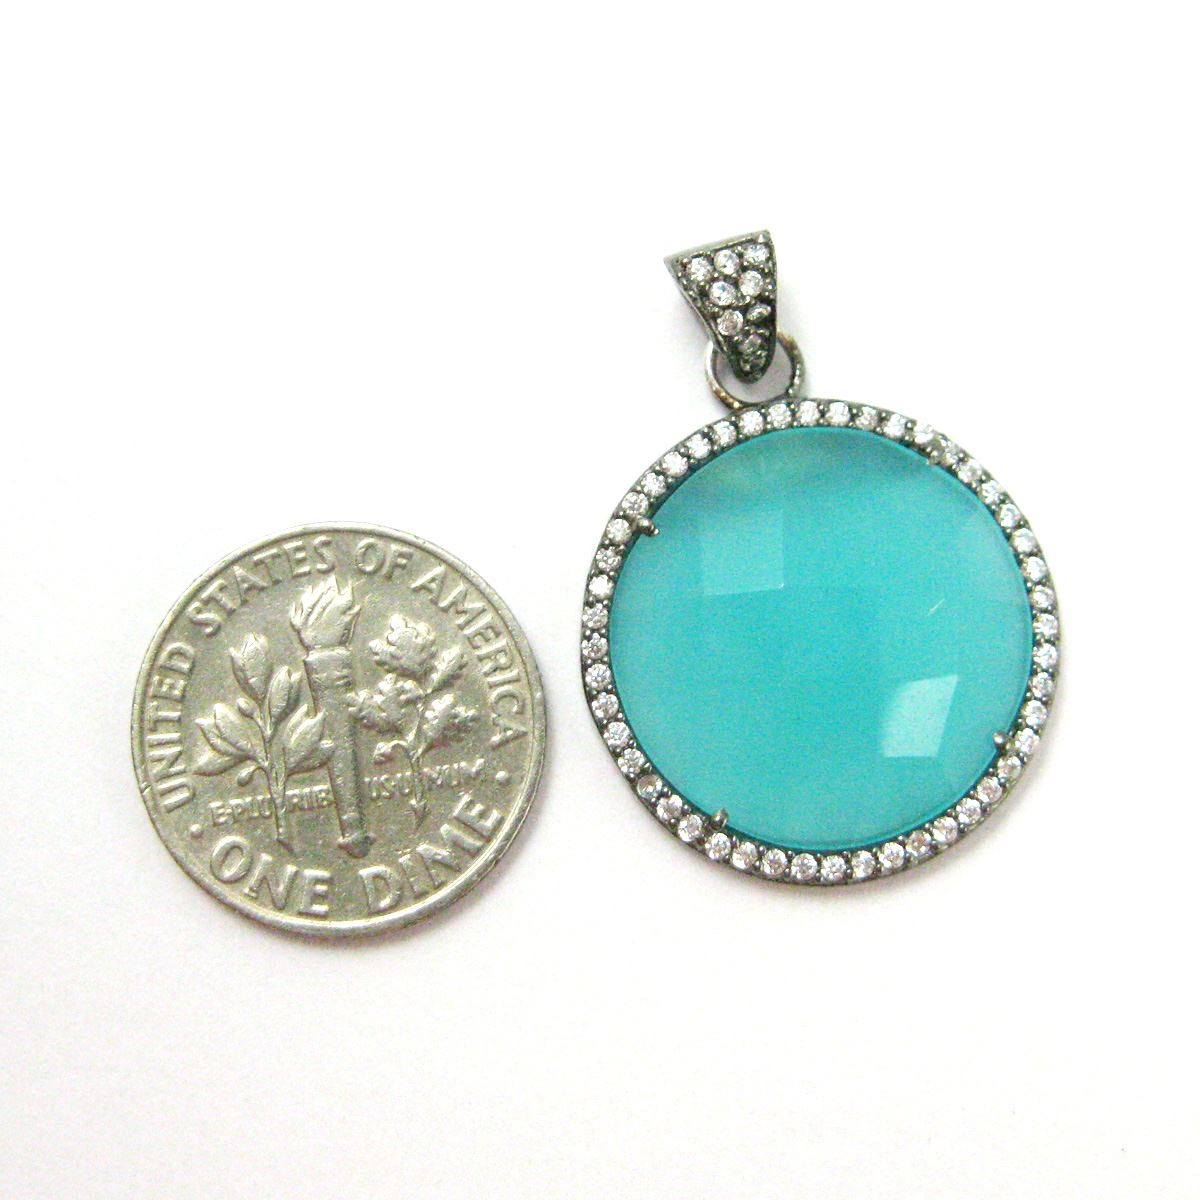 Oxidized Sterling Silver Pave Bezel Gemstone Pendant - Cubic Zirconia Pave Setting -  Round Faceted Stone- Peru Chalcedony - 21mm